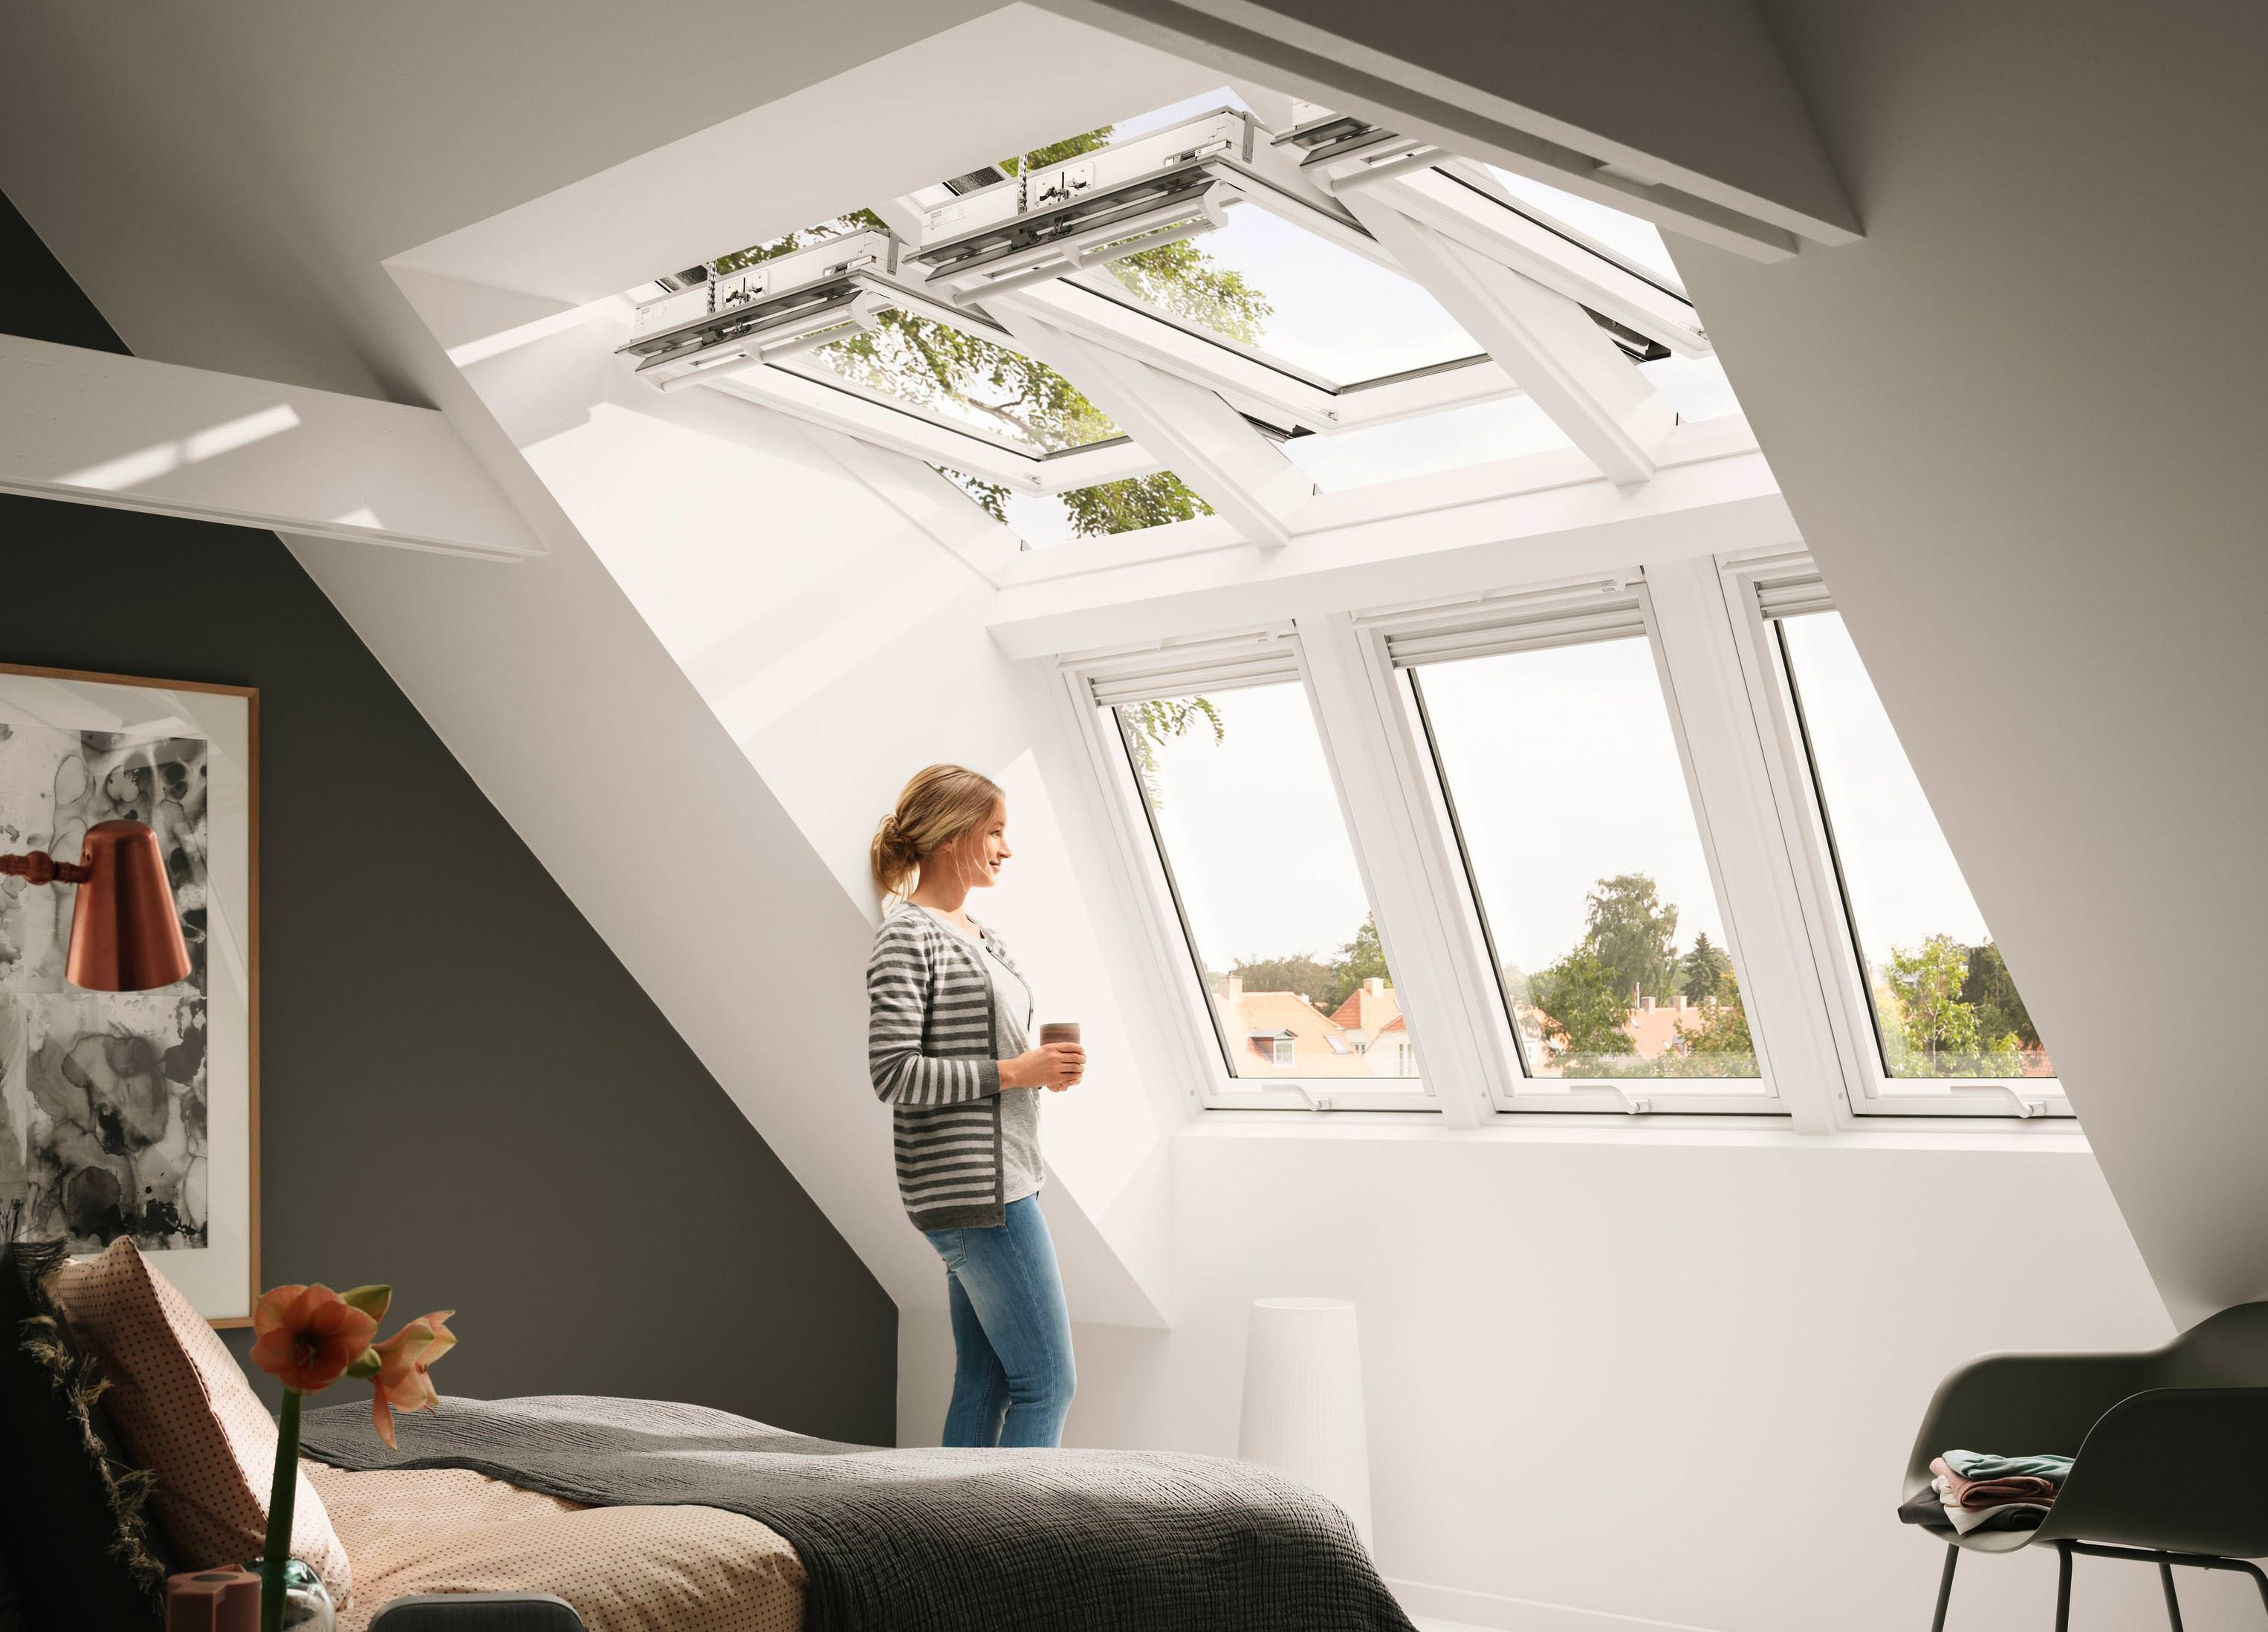 velux preise cheap velux lichtlsung with velux preise gallery of dachfenster velux roto braas. Black Bedroom Furniture Sets. Home Design Ideas